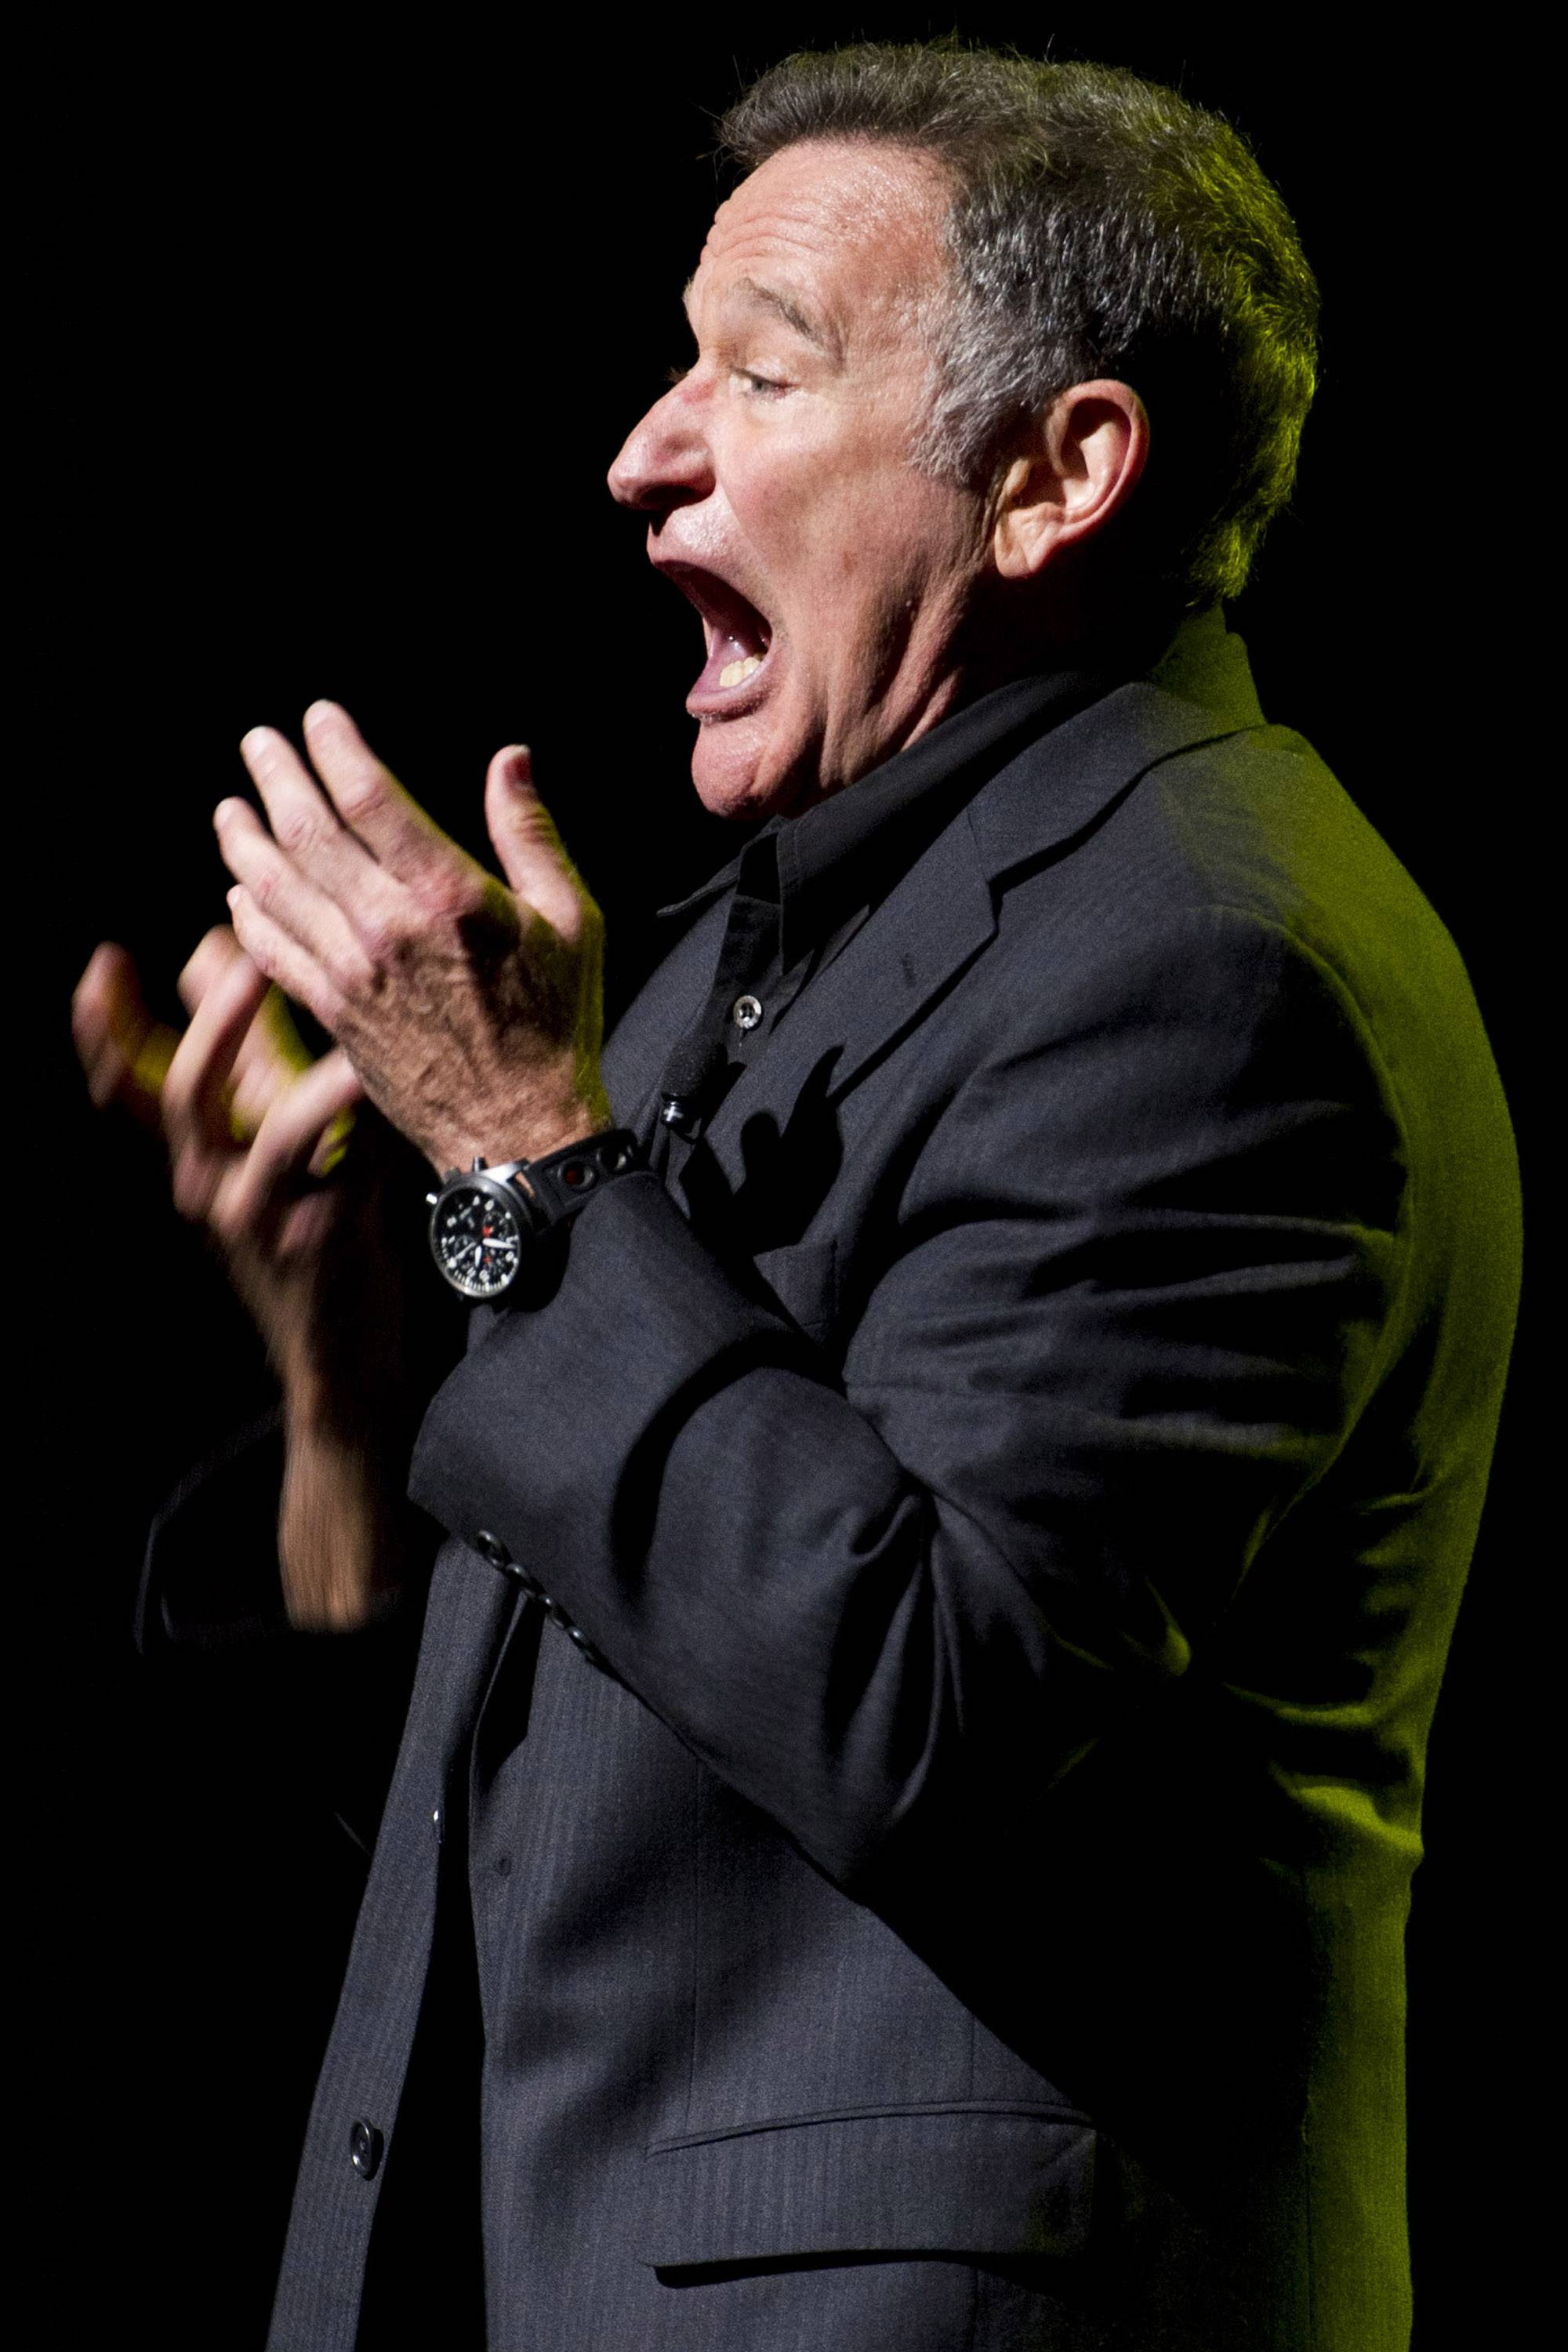 Robin Williams performed at the 6th Annual Stand Up For Heroes benefit concert for injured service members and veterans in 2012. Williams, whose free-form comedy and adept impressions dazzled audiences for decades, died Monday. He was 63.